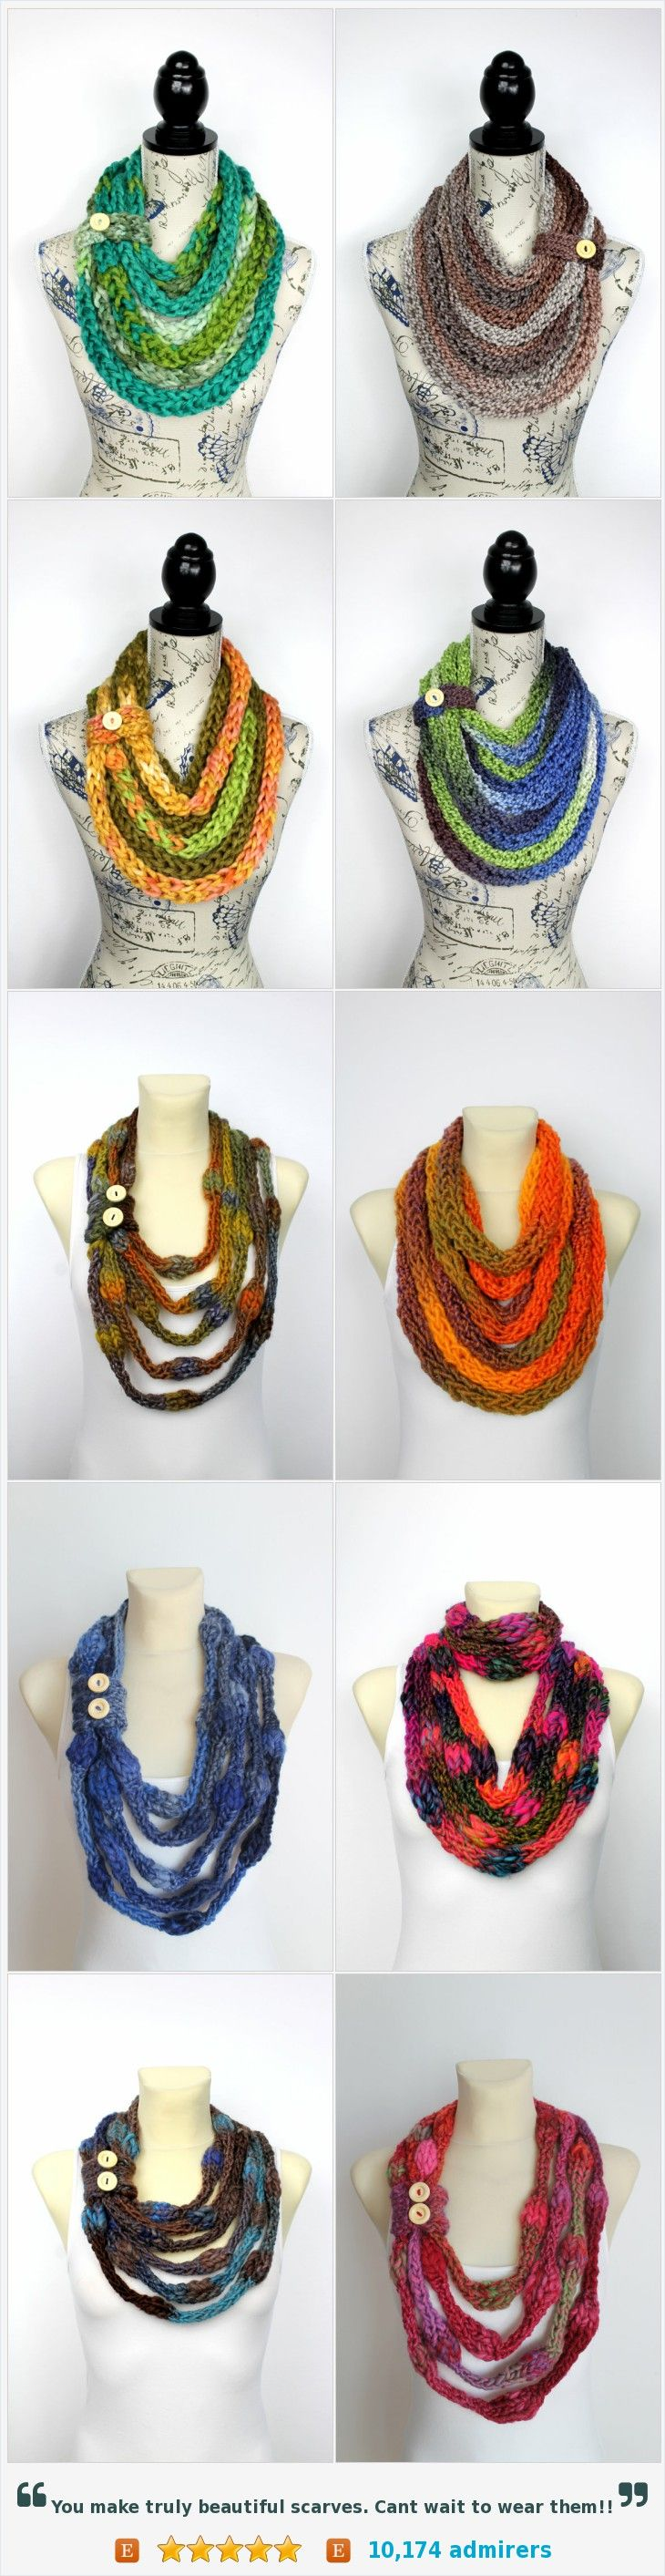 Unique Handmade Scarves  by @locotrends #etsy https://www.etsy.com/shop/LocoTrends?ref=profile_shopicon&section_id=18797859